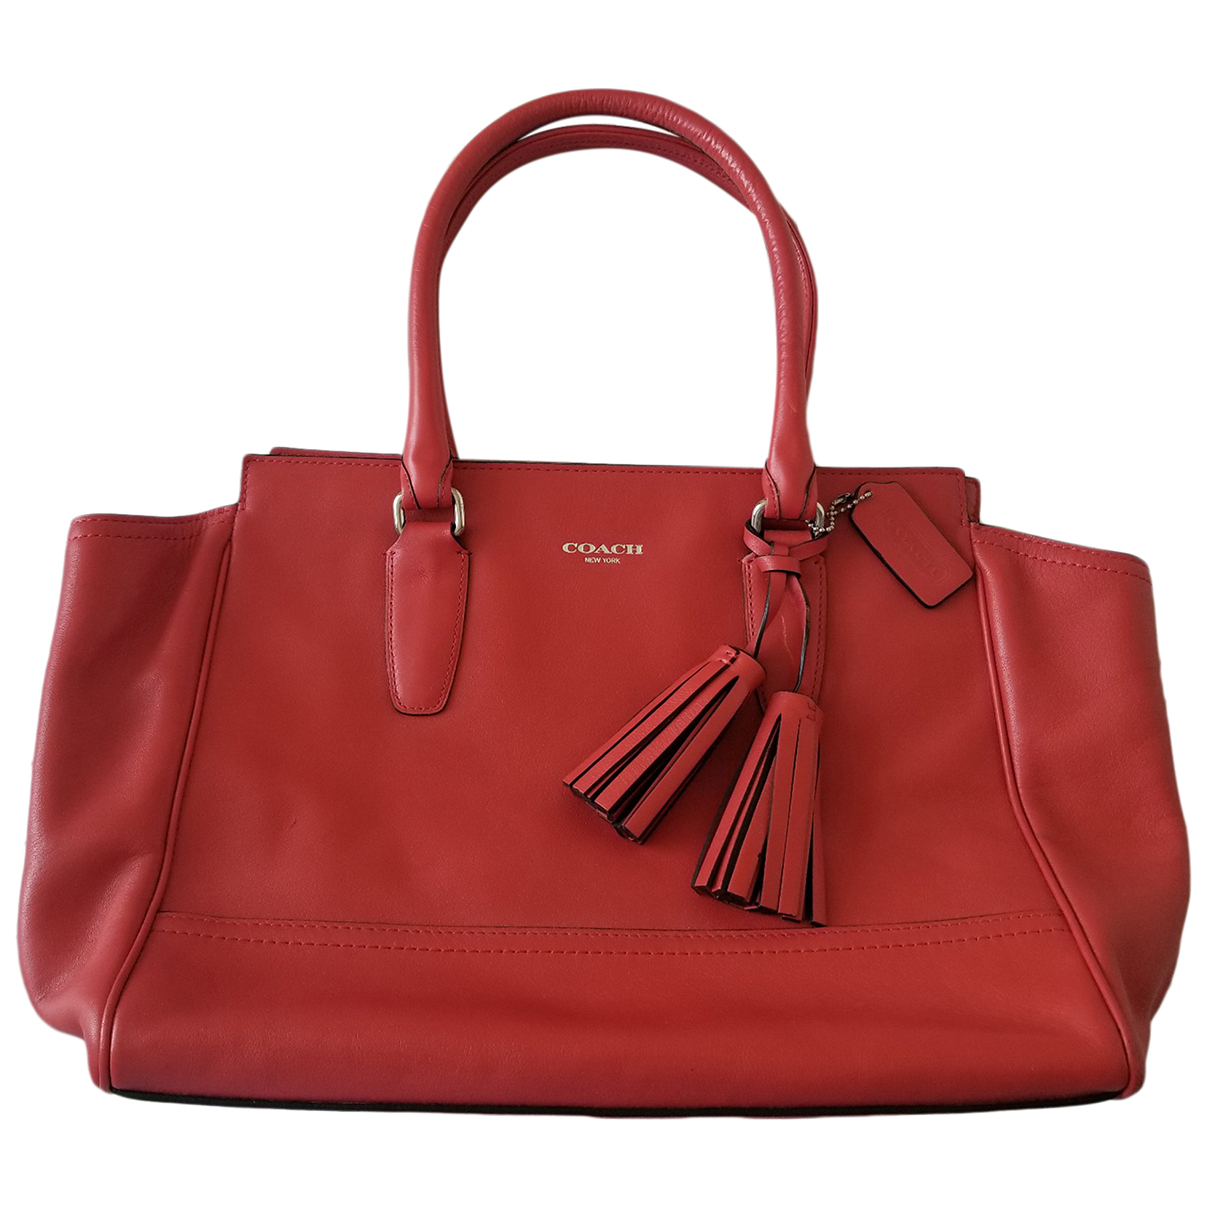 Coach - Sac a main Borough Bag pour femme en cuir - orange